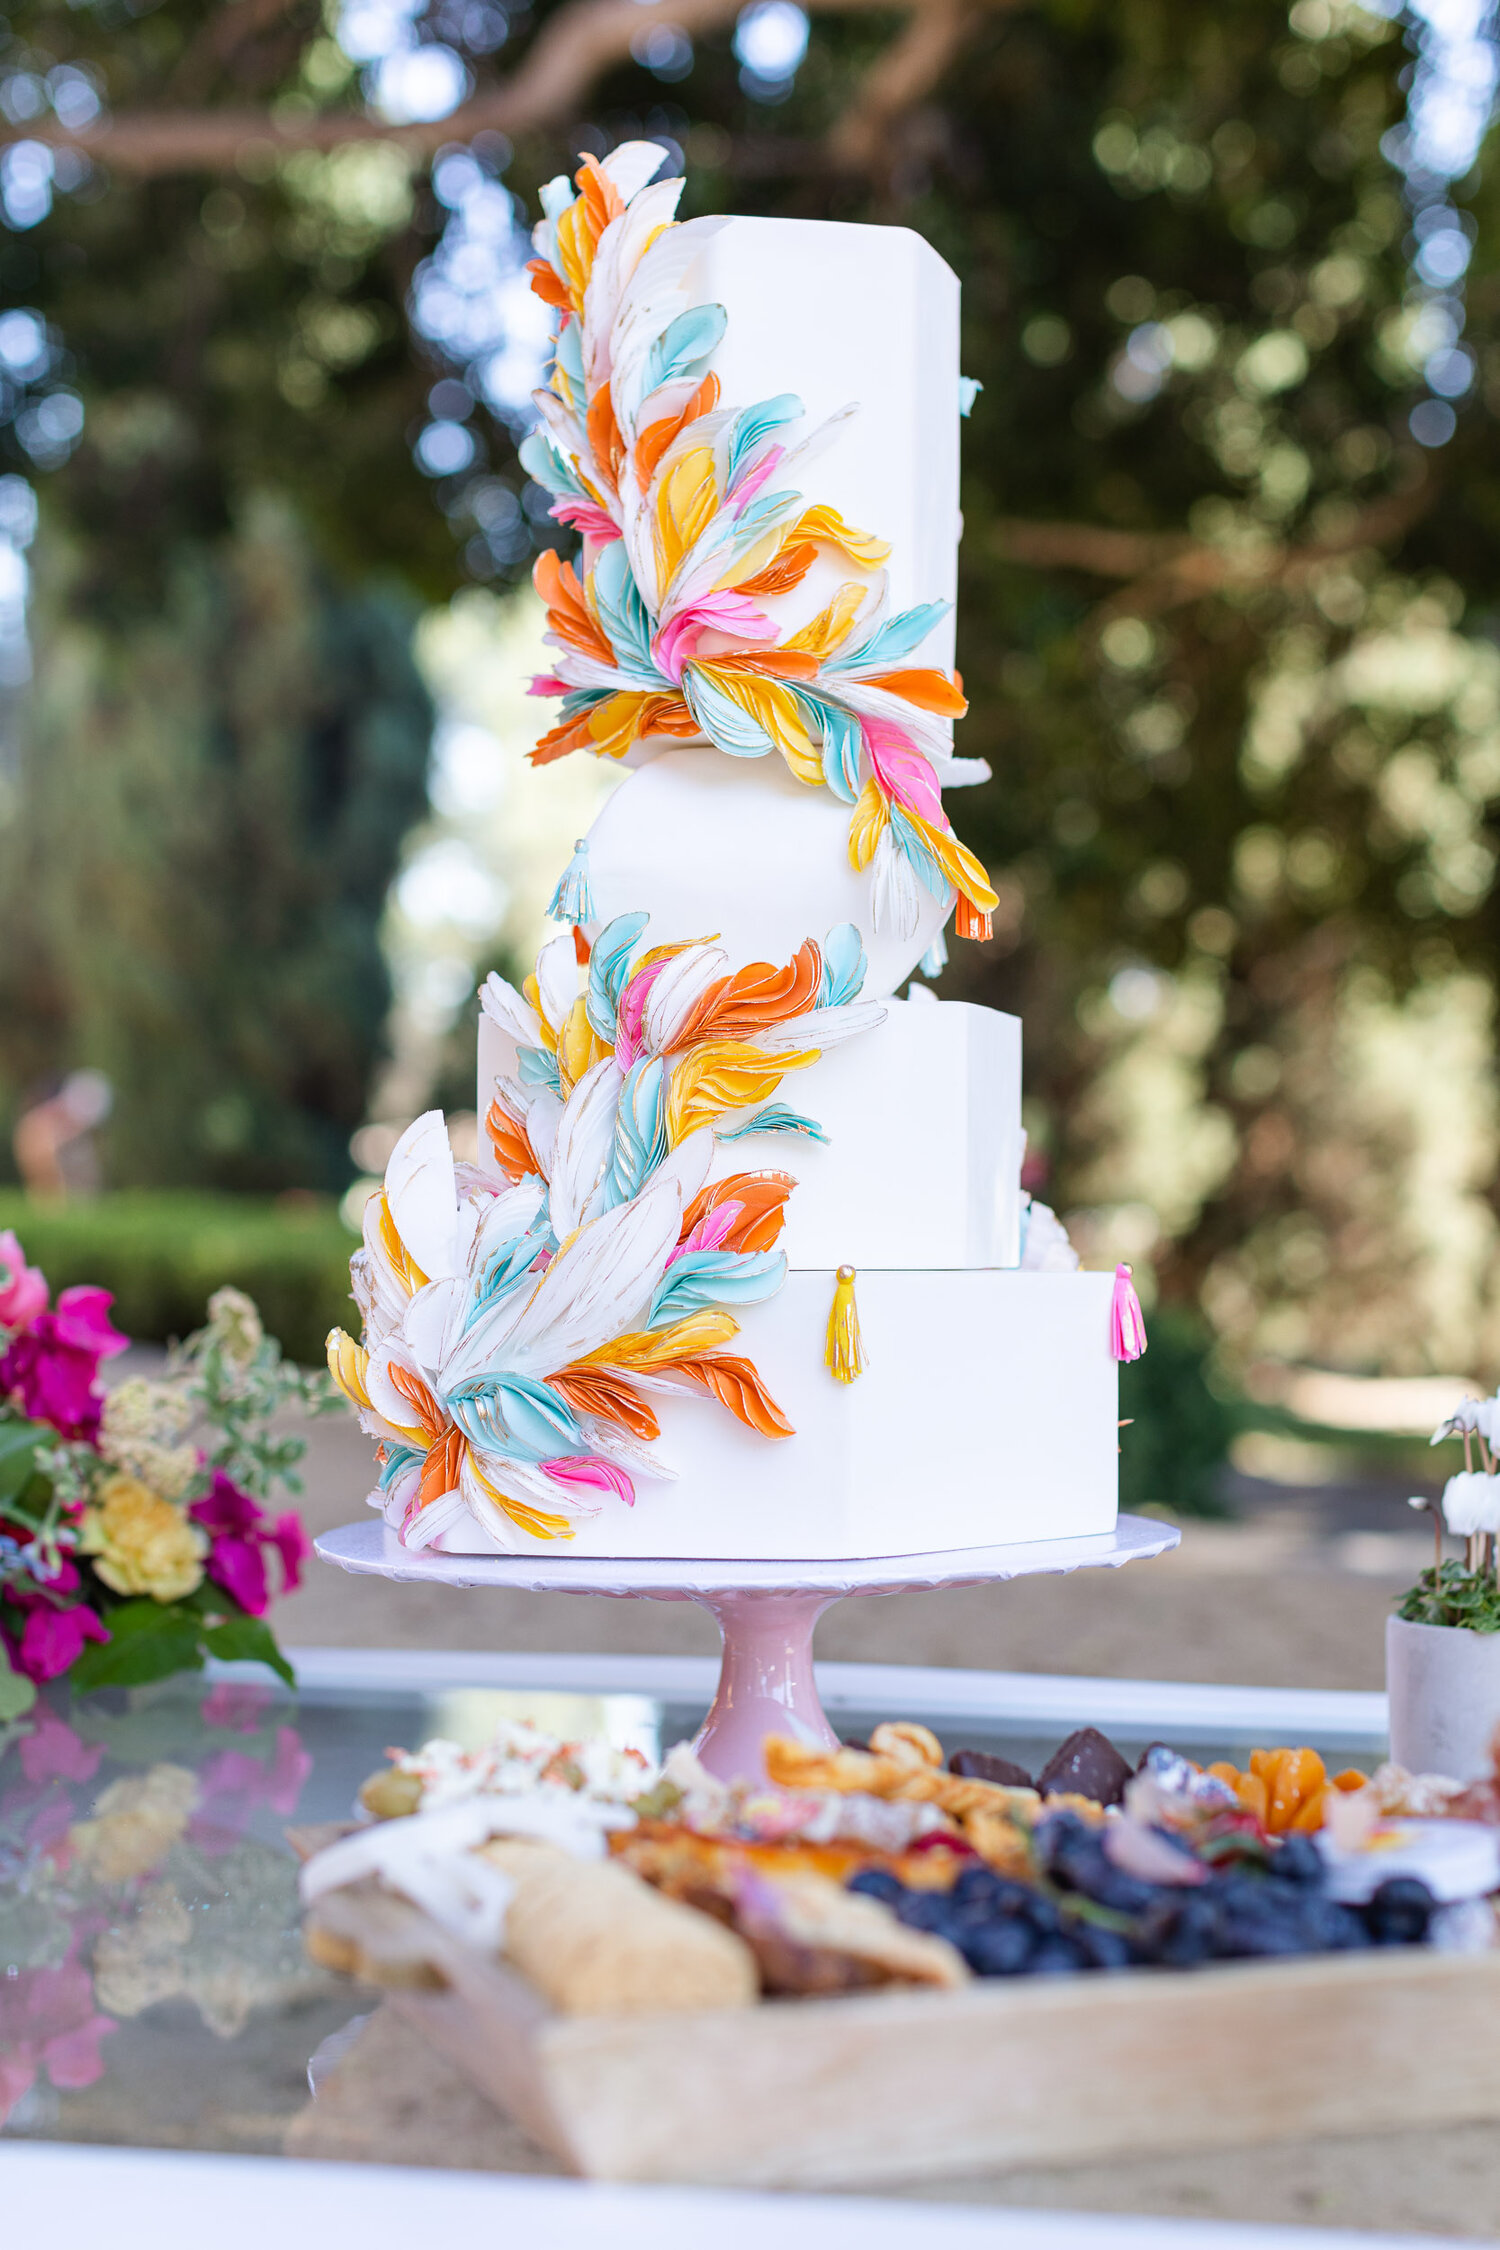 h & l lovely creations bespoke weddings southern california colourful 00003